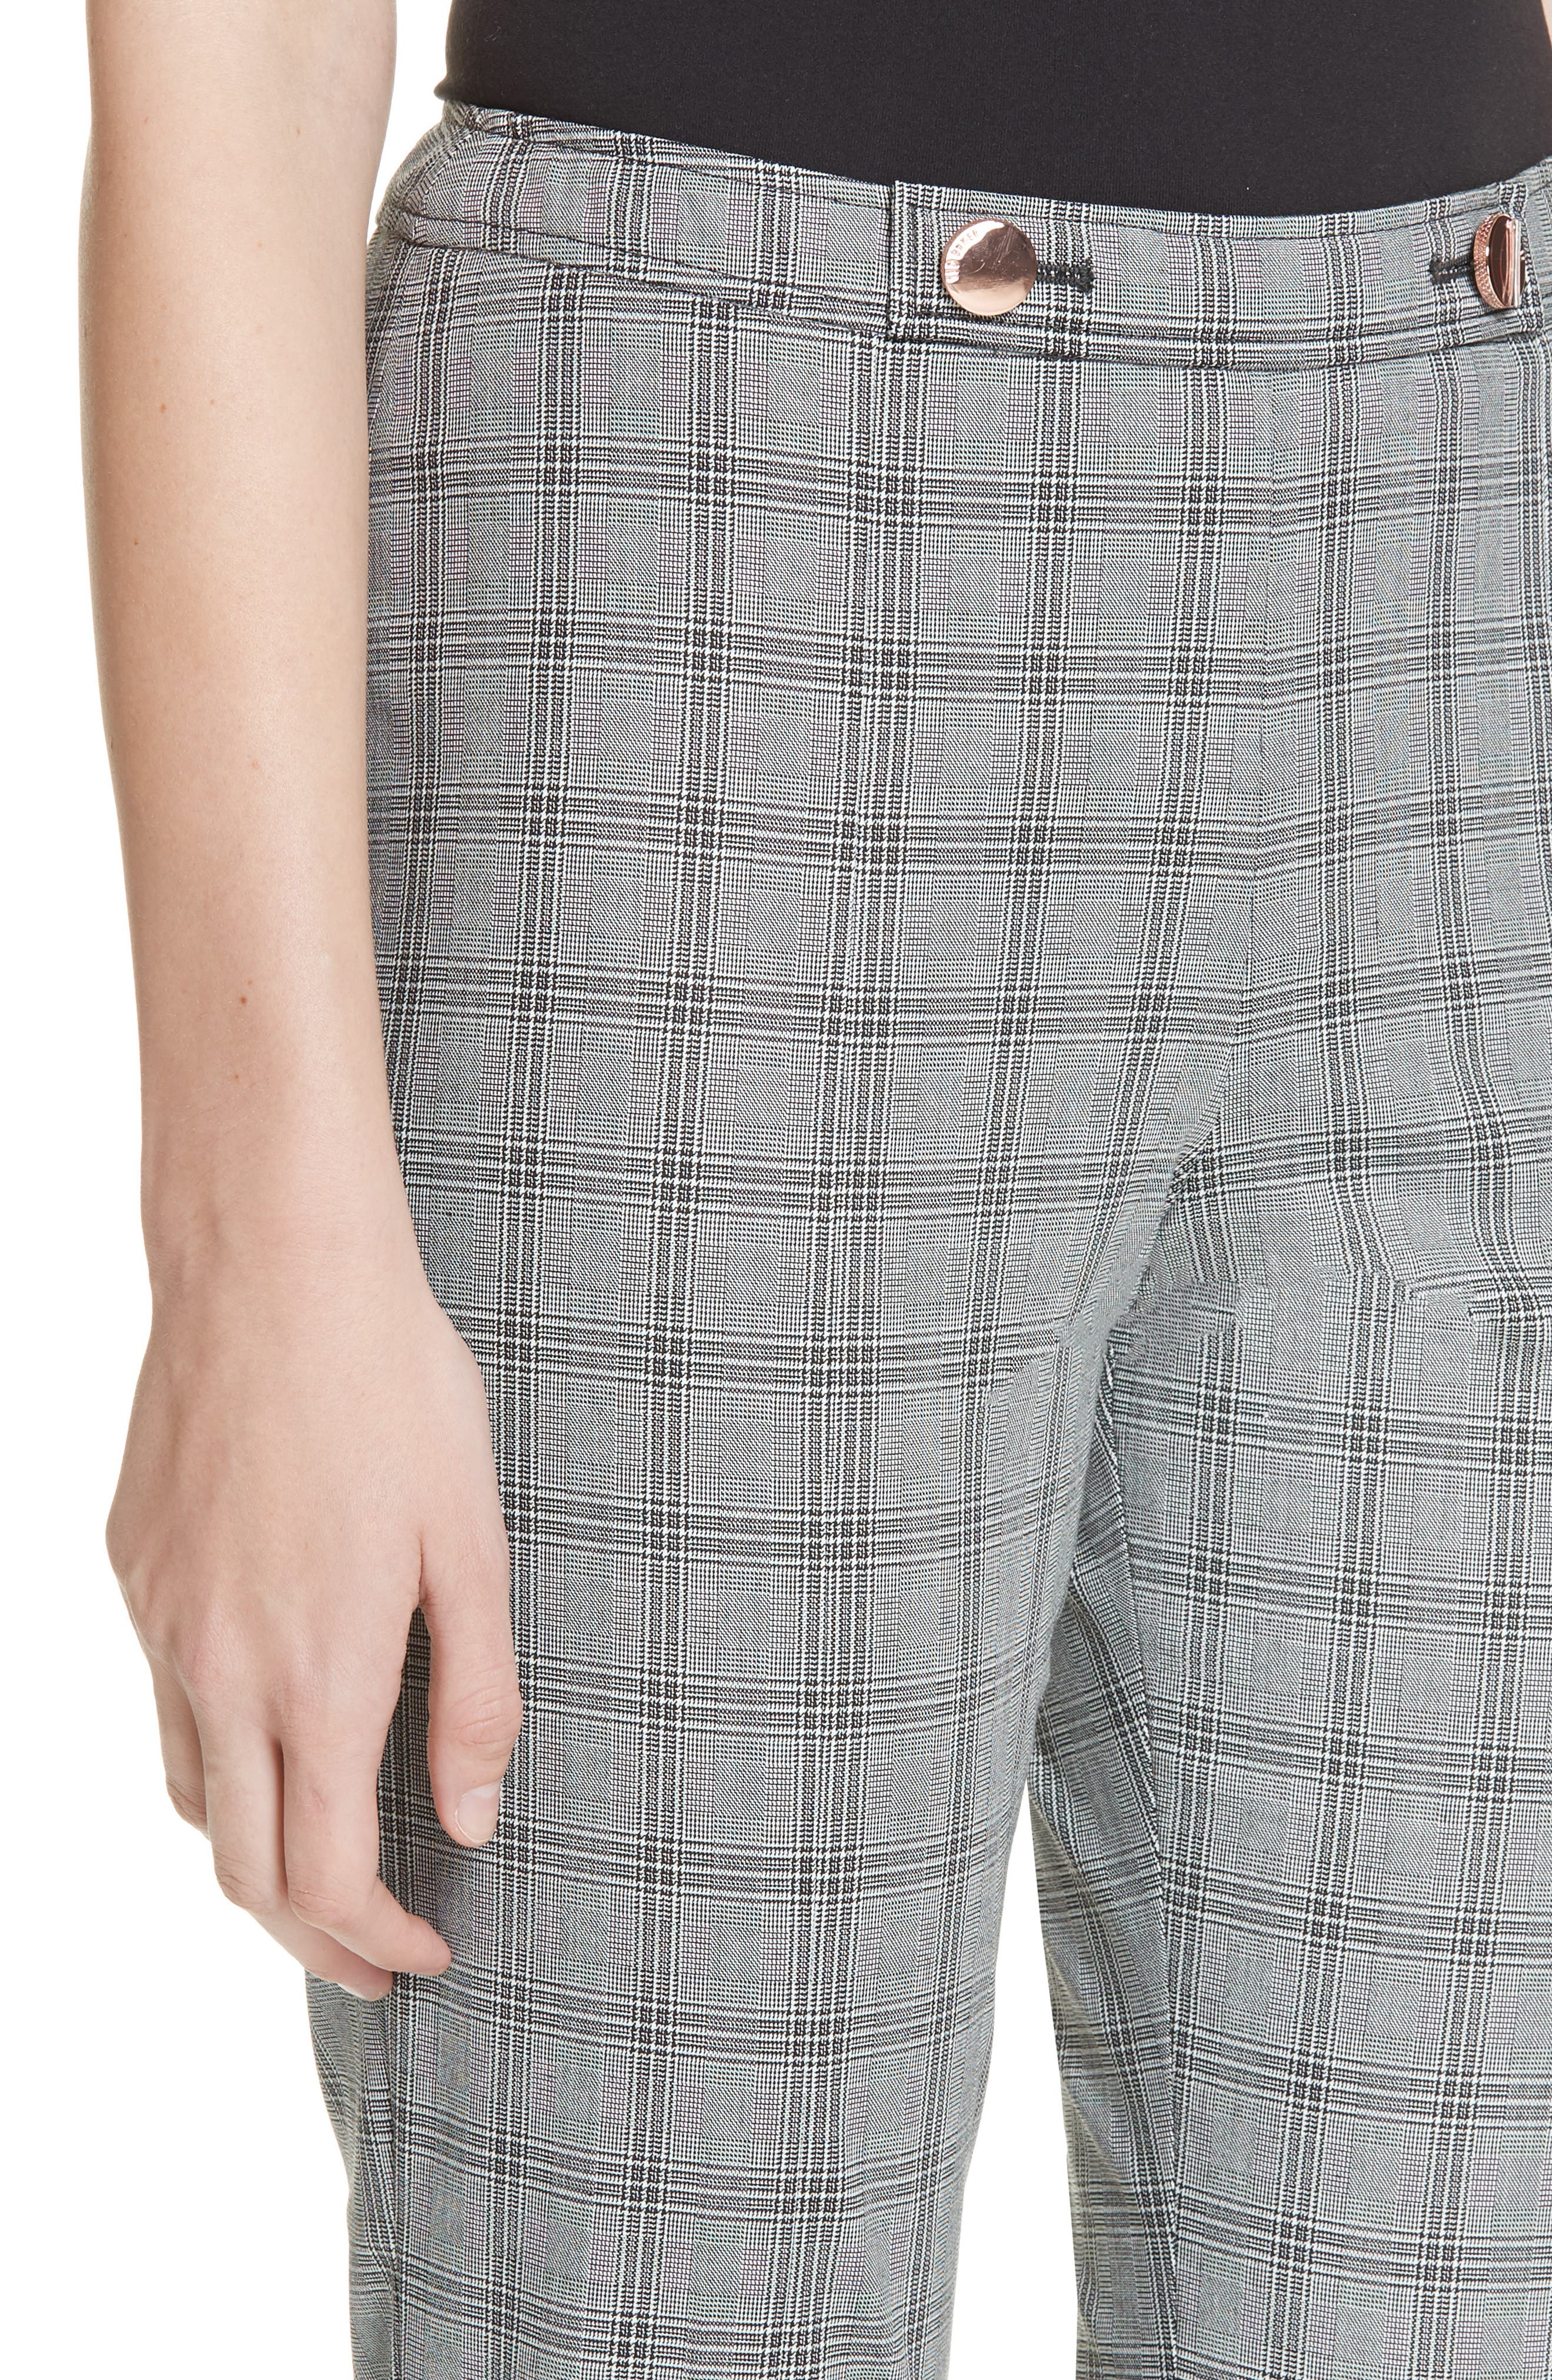 Ted Working Title Ristat Check Plaid Trousers,                             Alternate thumbnail 4, color,                             030